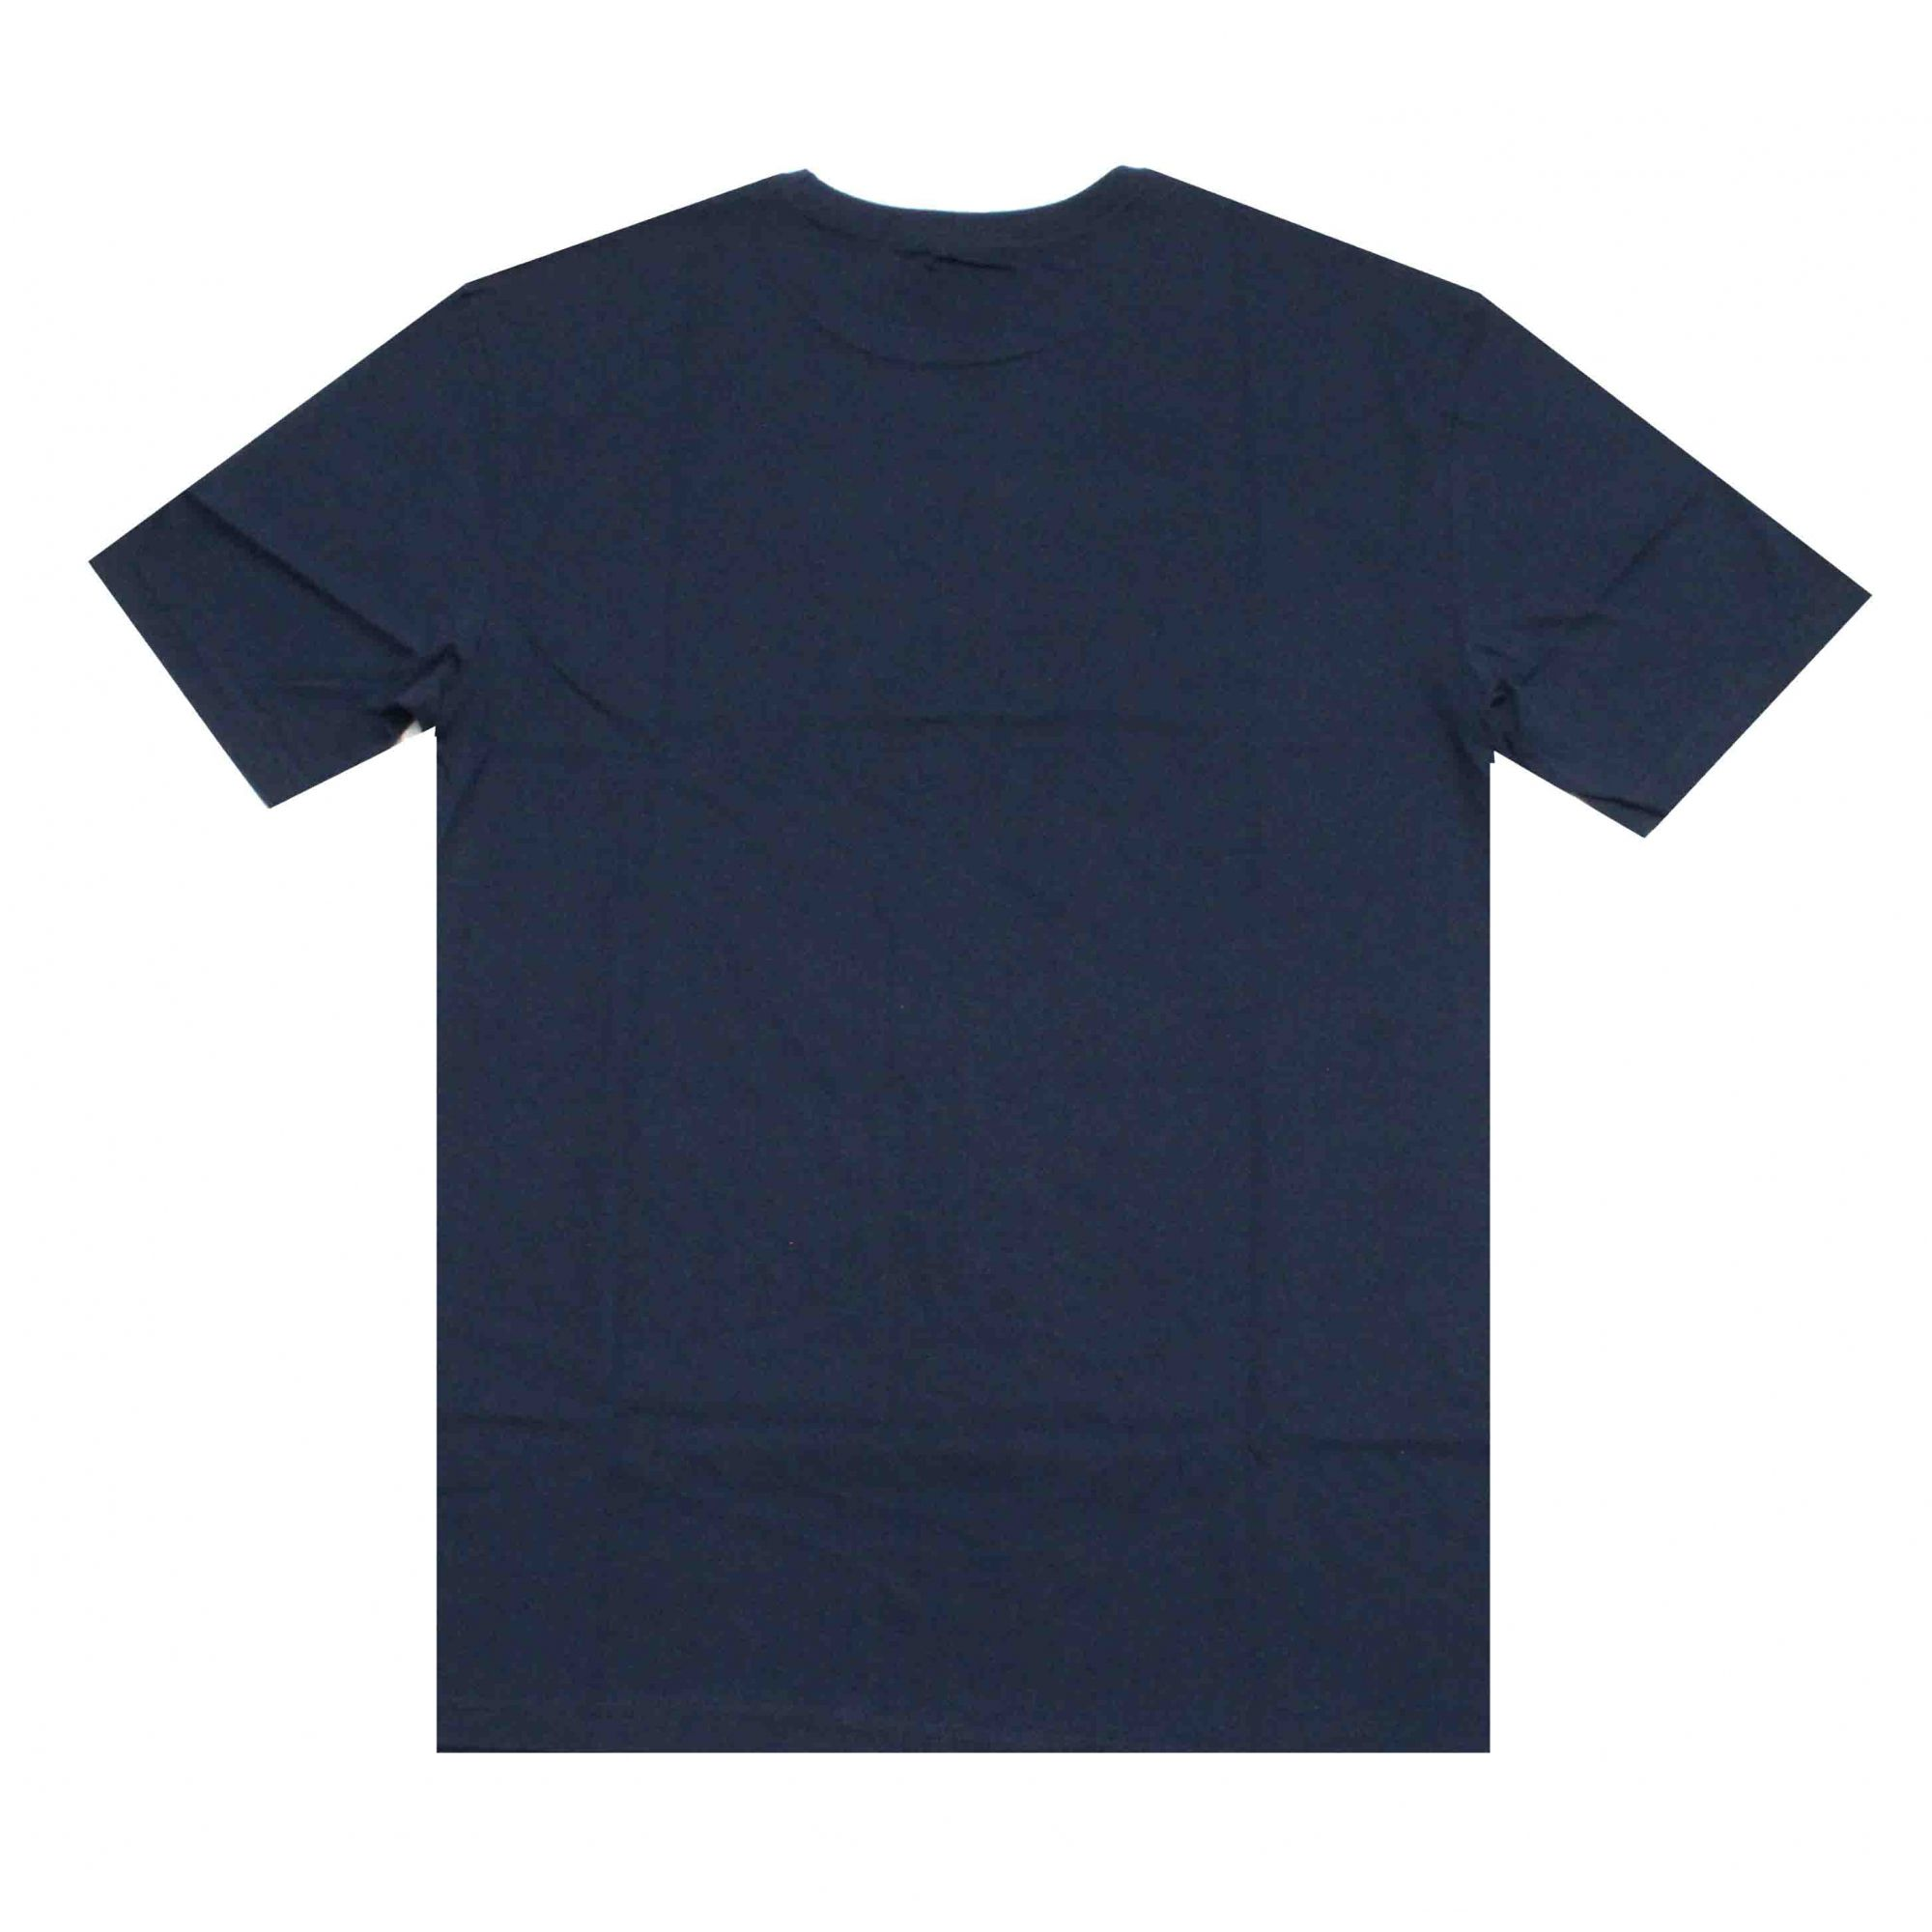 Camiseta DGK Hustle Blue Navy